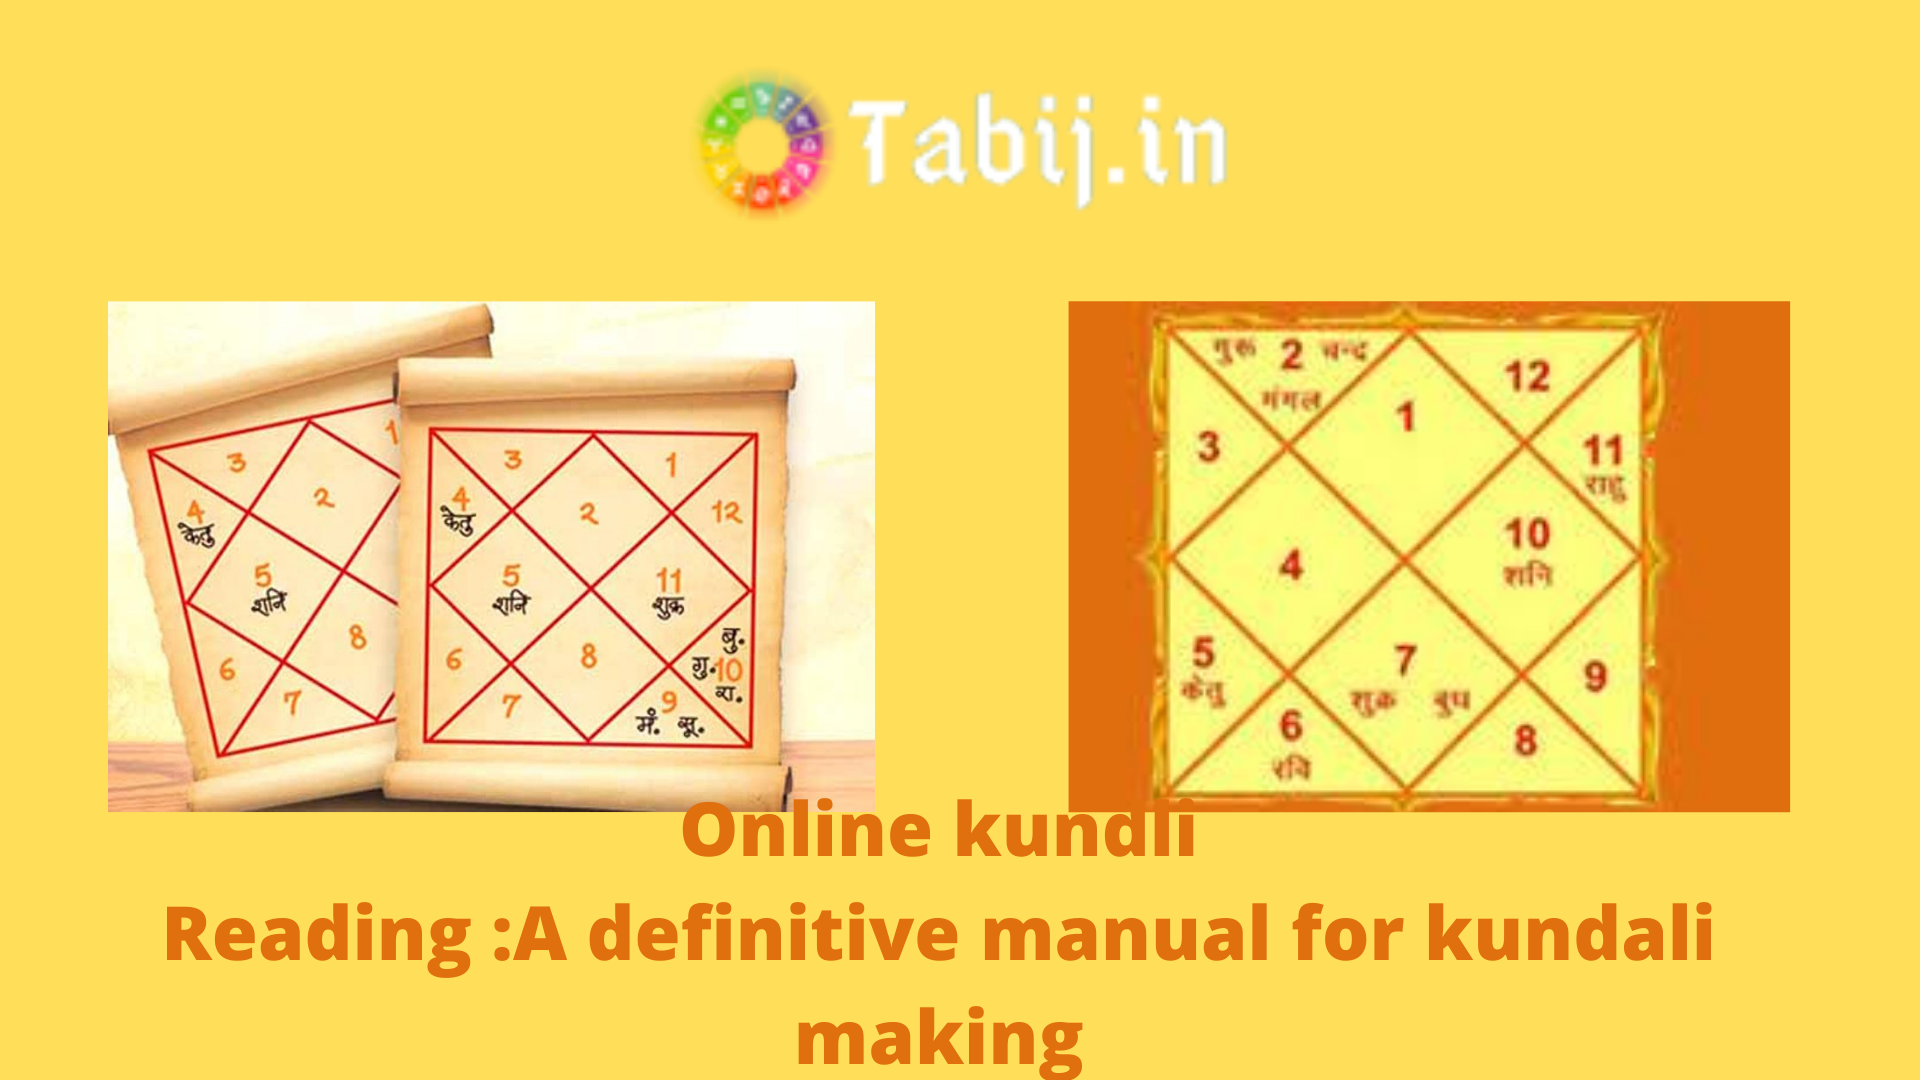 Online kundli Reading _A definitive manual for kundali making